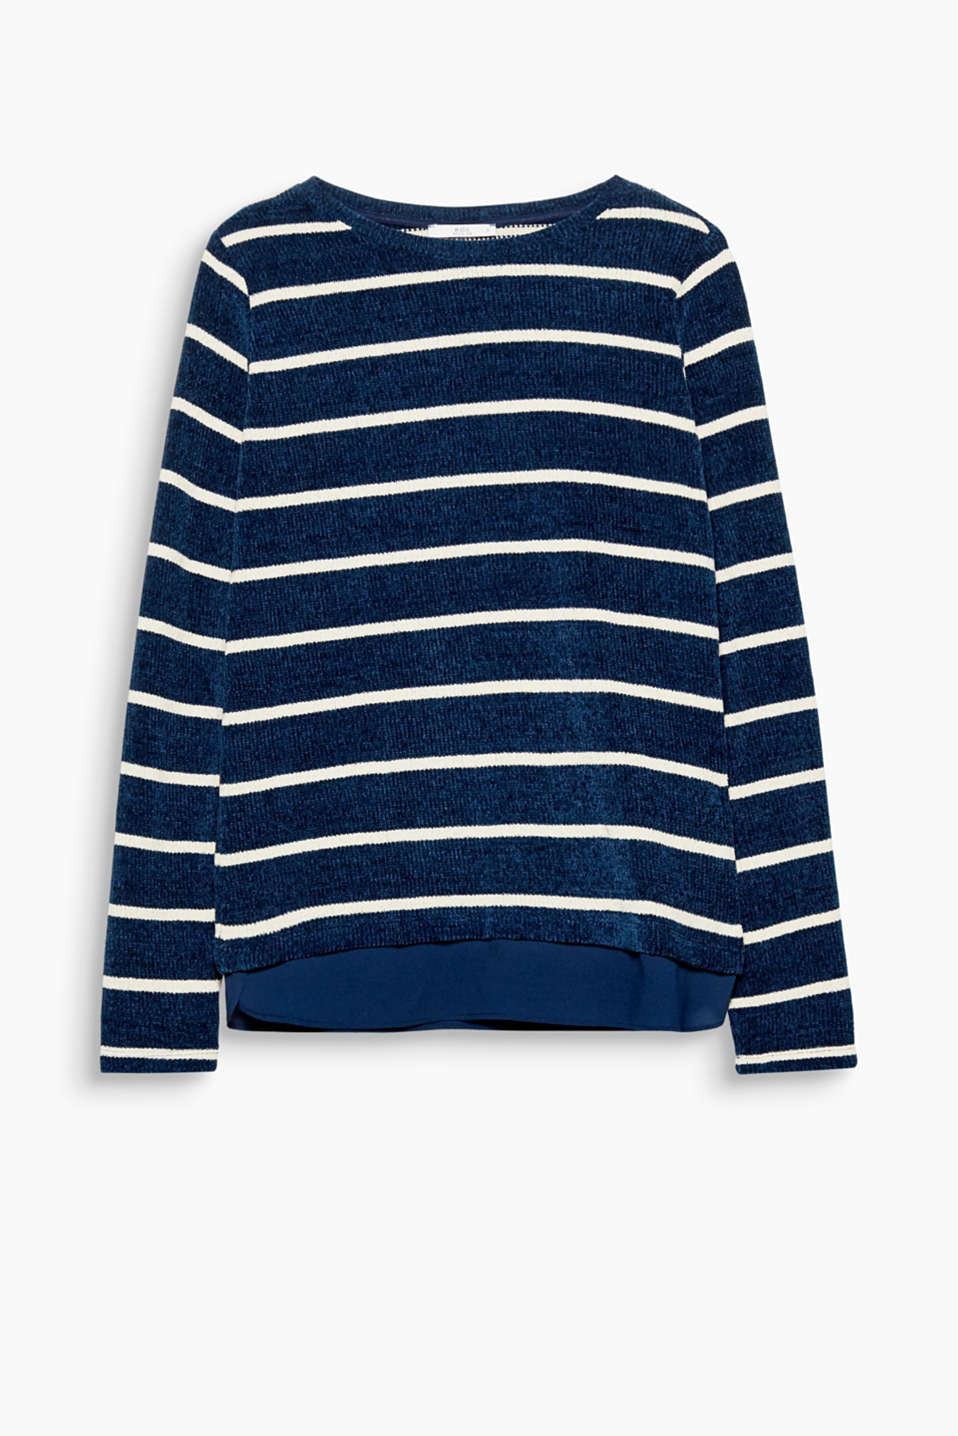 Get that cosy feeling: long sleeve top in soft chenille yarn with a layered look hem and a stripe pattern